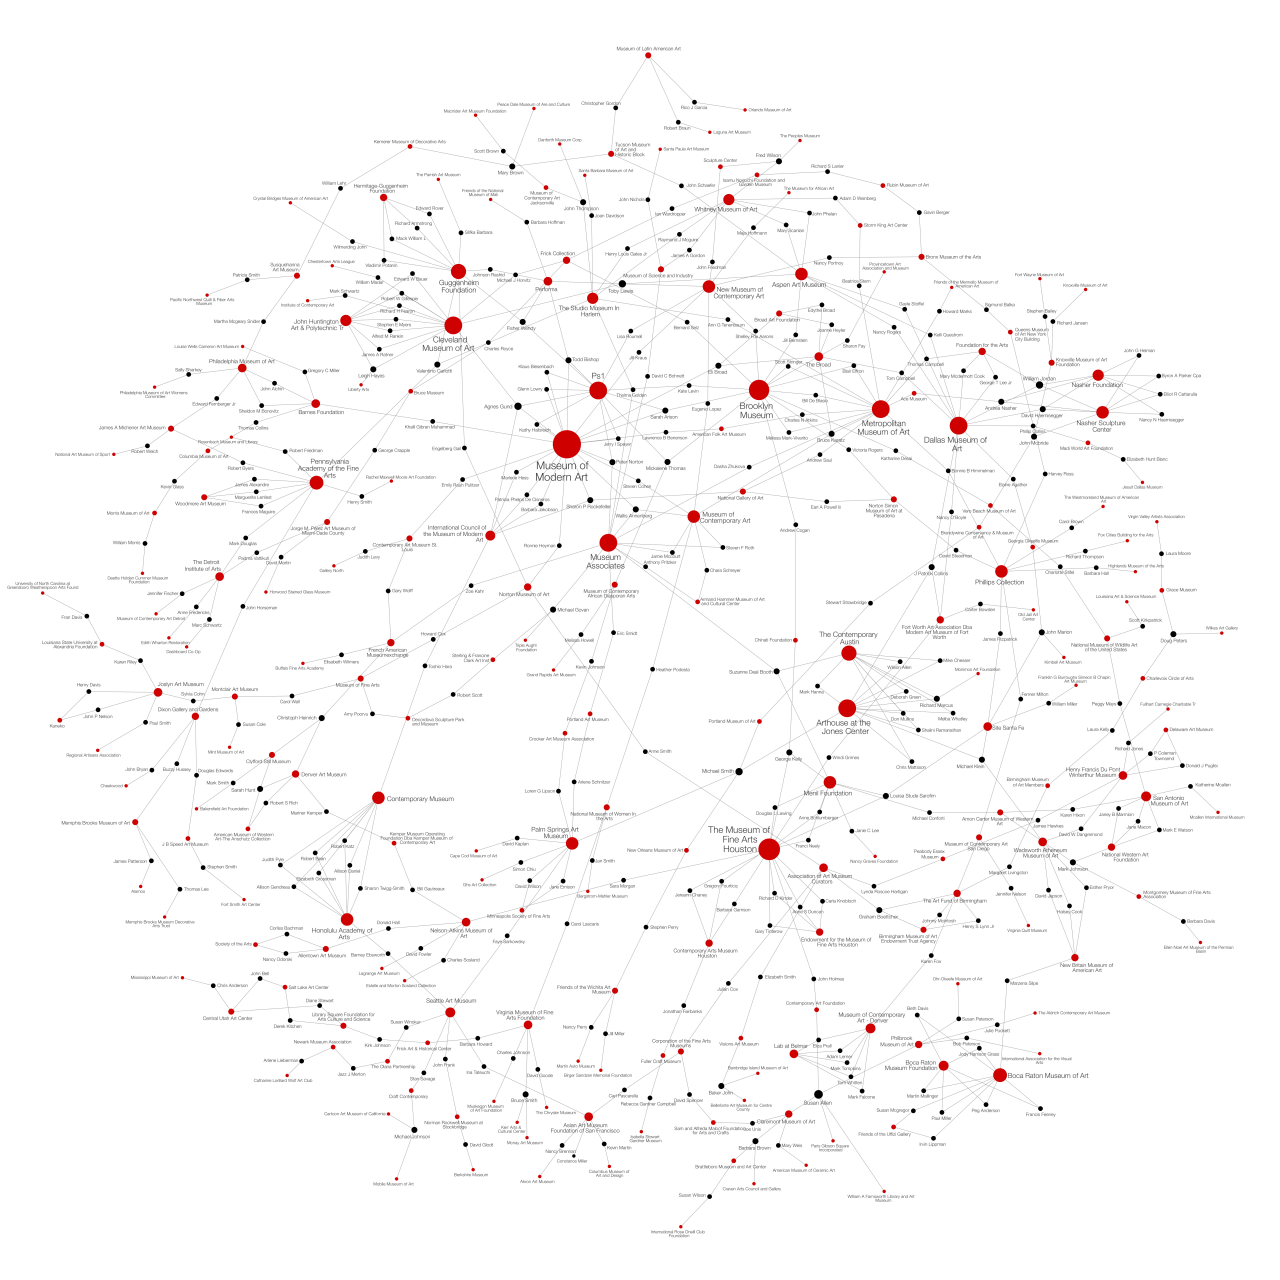 Network of art galleries and their board members represented by red and black dots of different sizes connected by lines